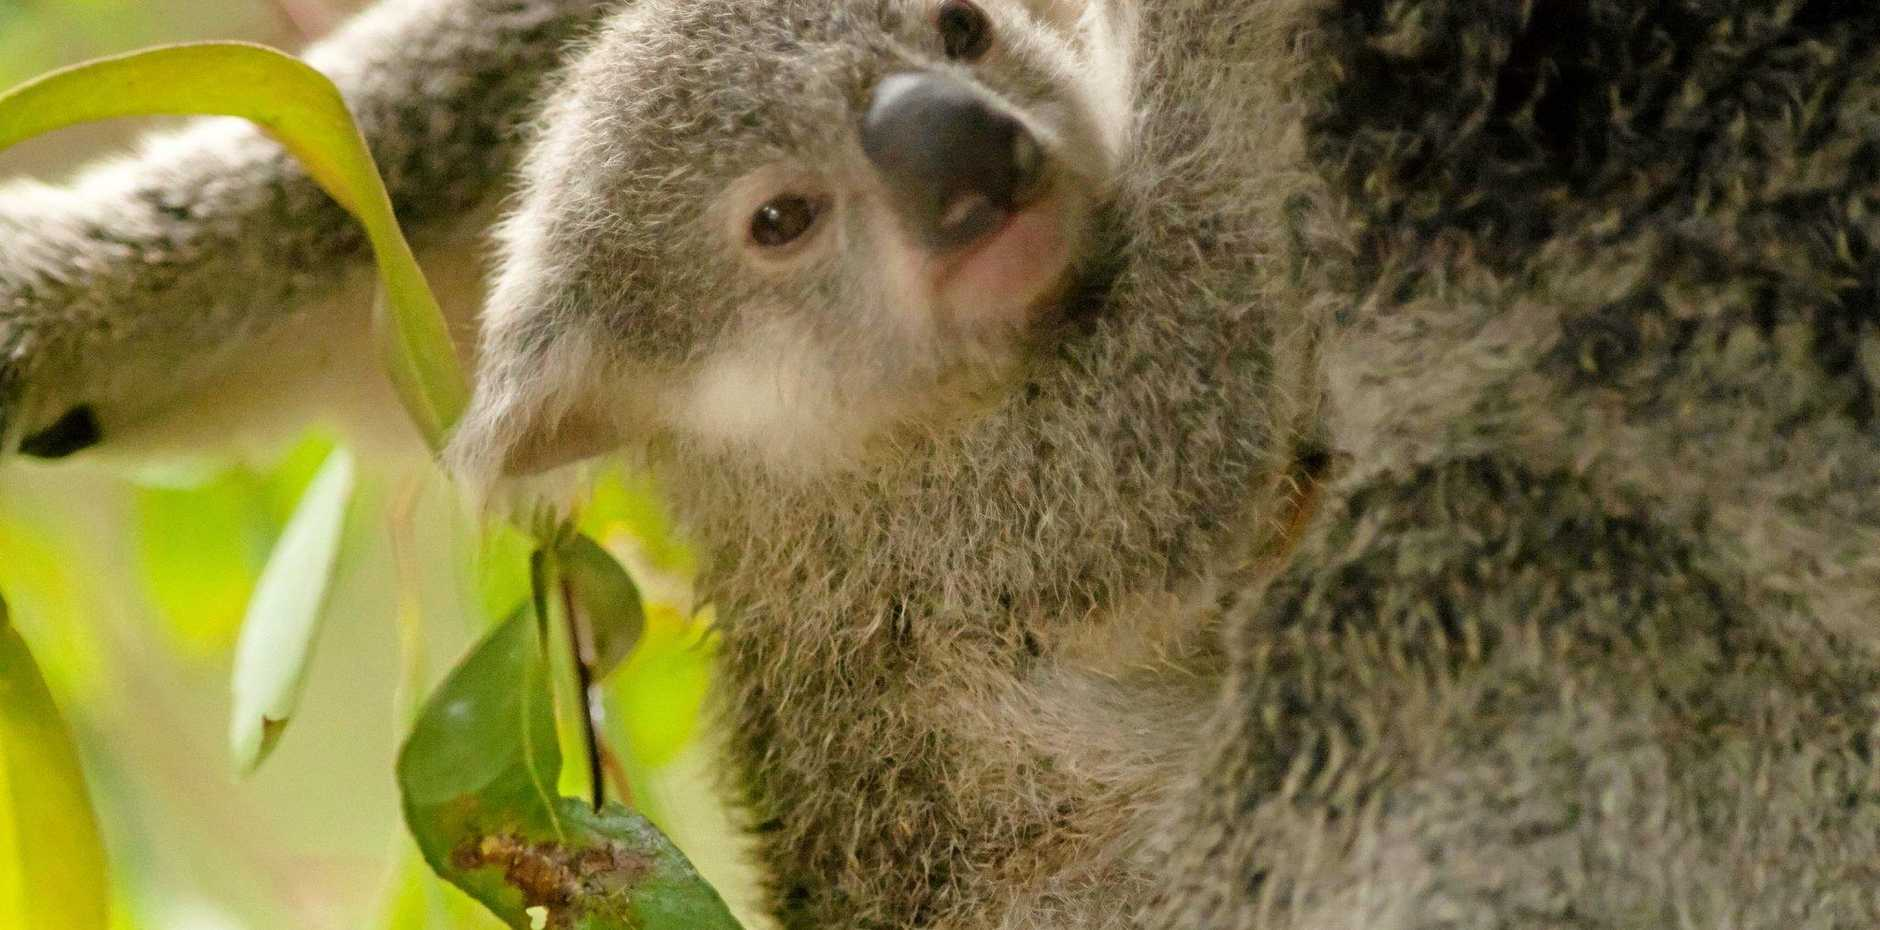 NOOSA Council's Koala Plan aims to protect habitat for the iconic species' survival